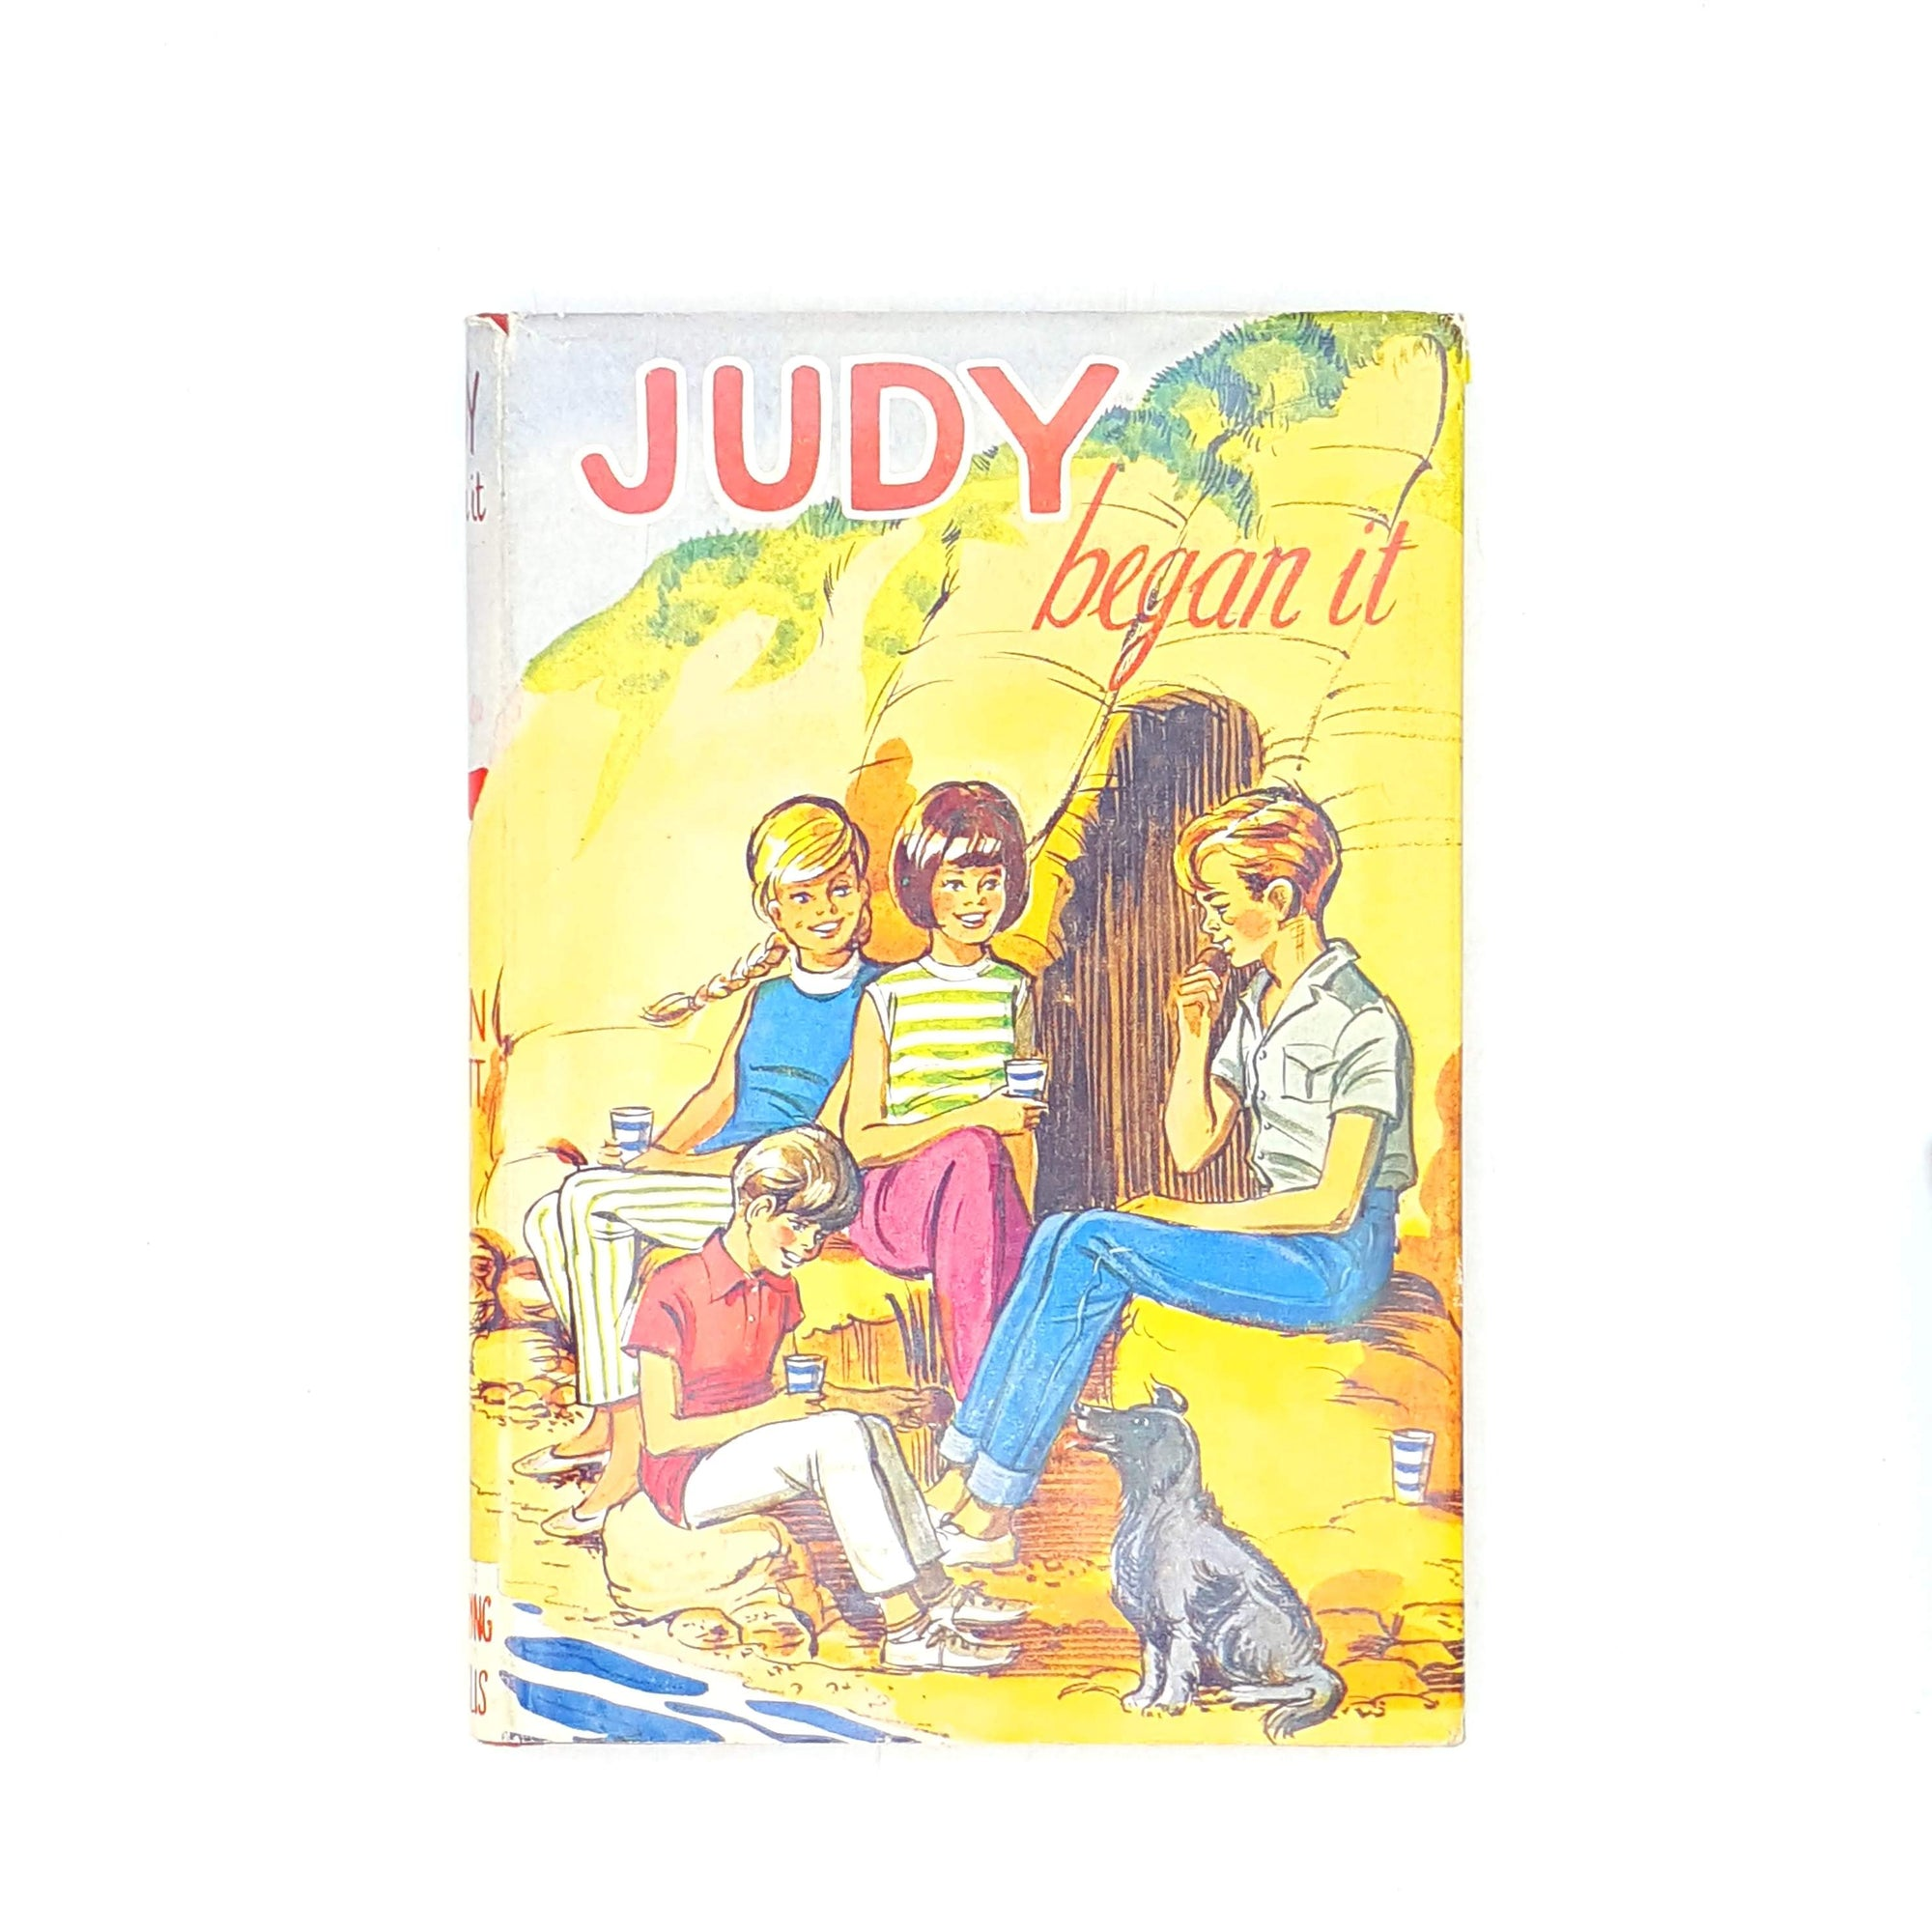 books-judy-began-it-old-classics-yellow-vintage-country-house-library-ellen-elliott-1967-thrift-childrens-